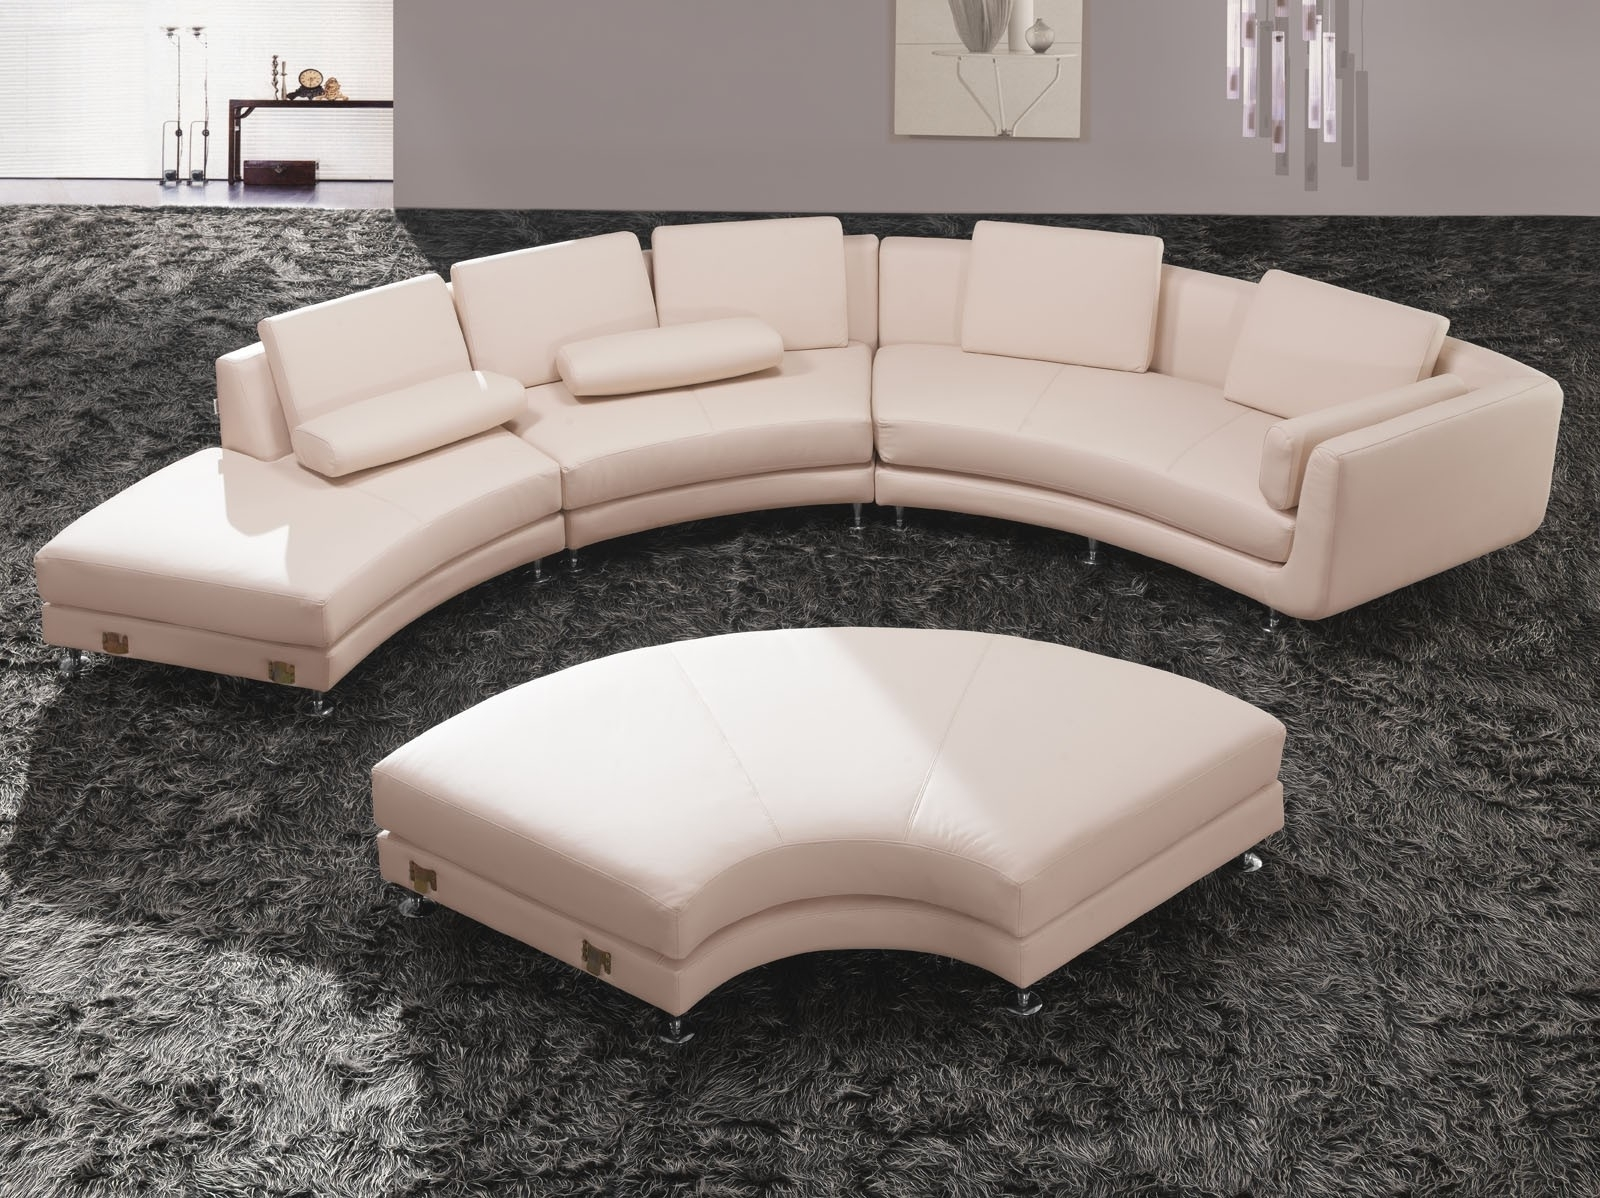 Well Liked Sofa : Glamorous Round Sectional Sofa Bed Curved Leather Tufted Pertaining To Round Sectional Sofas (View 14 of 15)